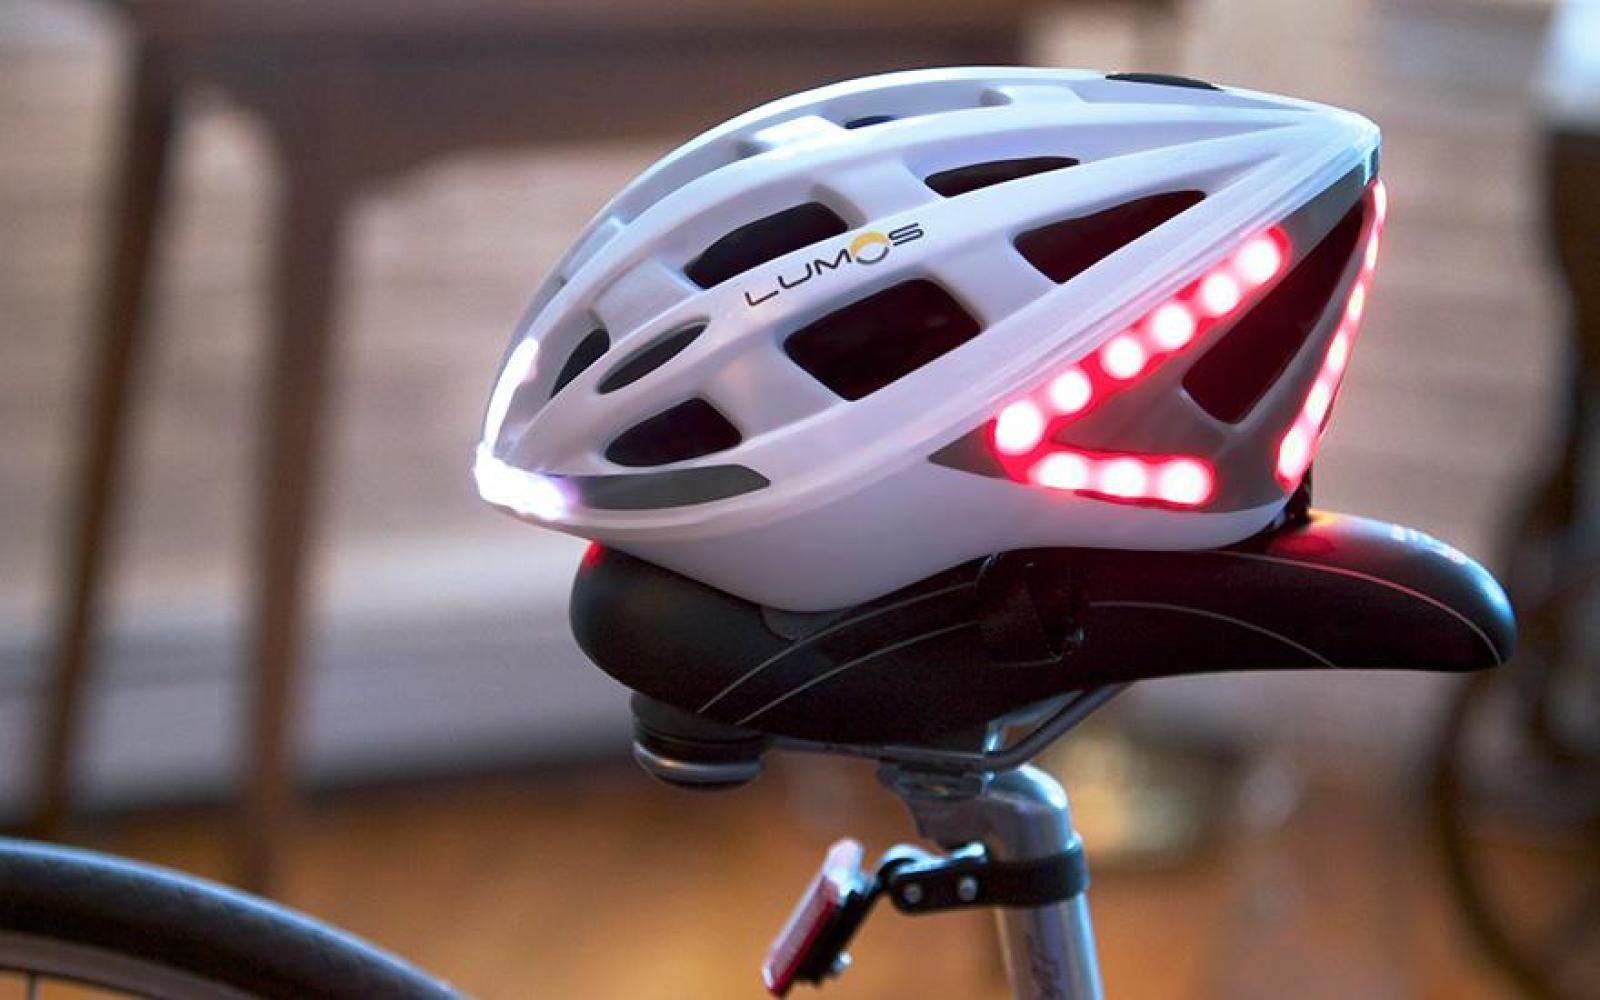 The Lumos Helmet provides the technology needed to bike safely with built-in LEDs and handlebar controls